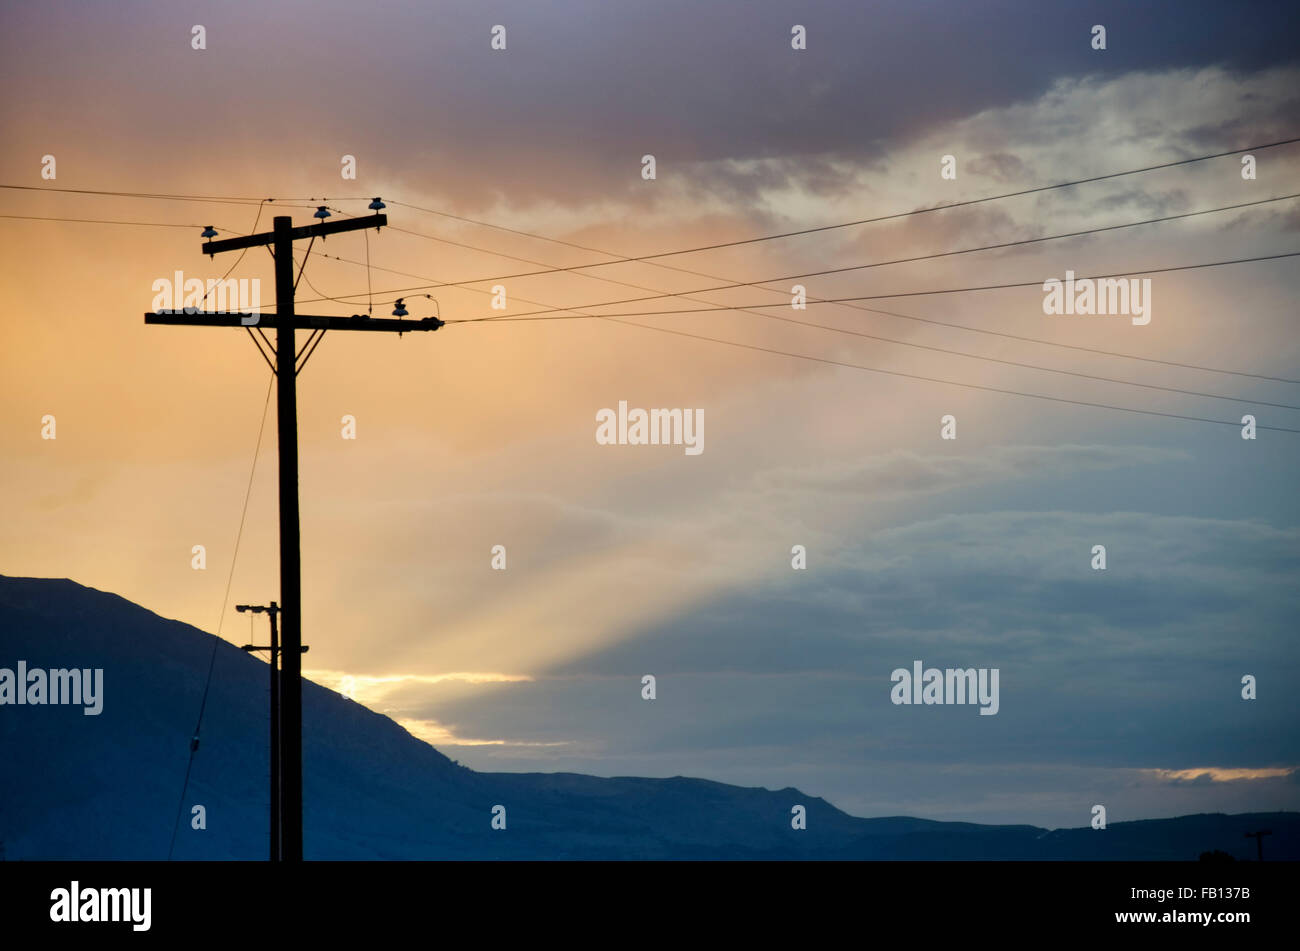 Silhouette of electricity pylon against cloudy sky - Stock Image